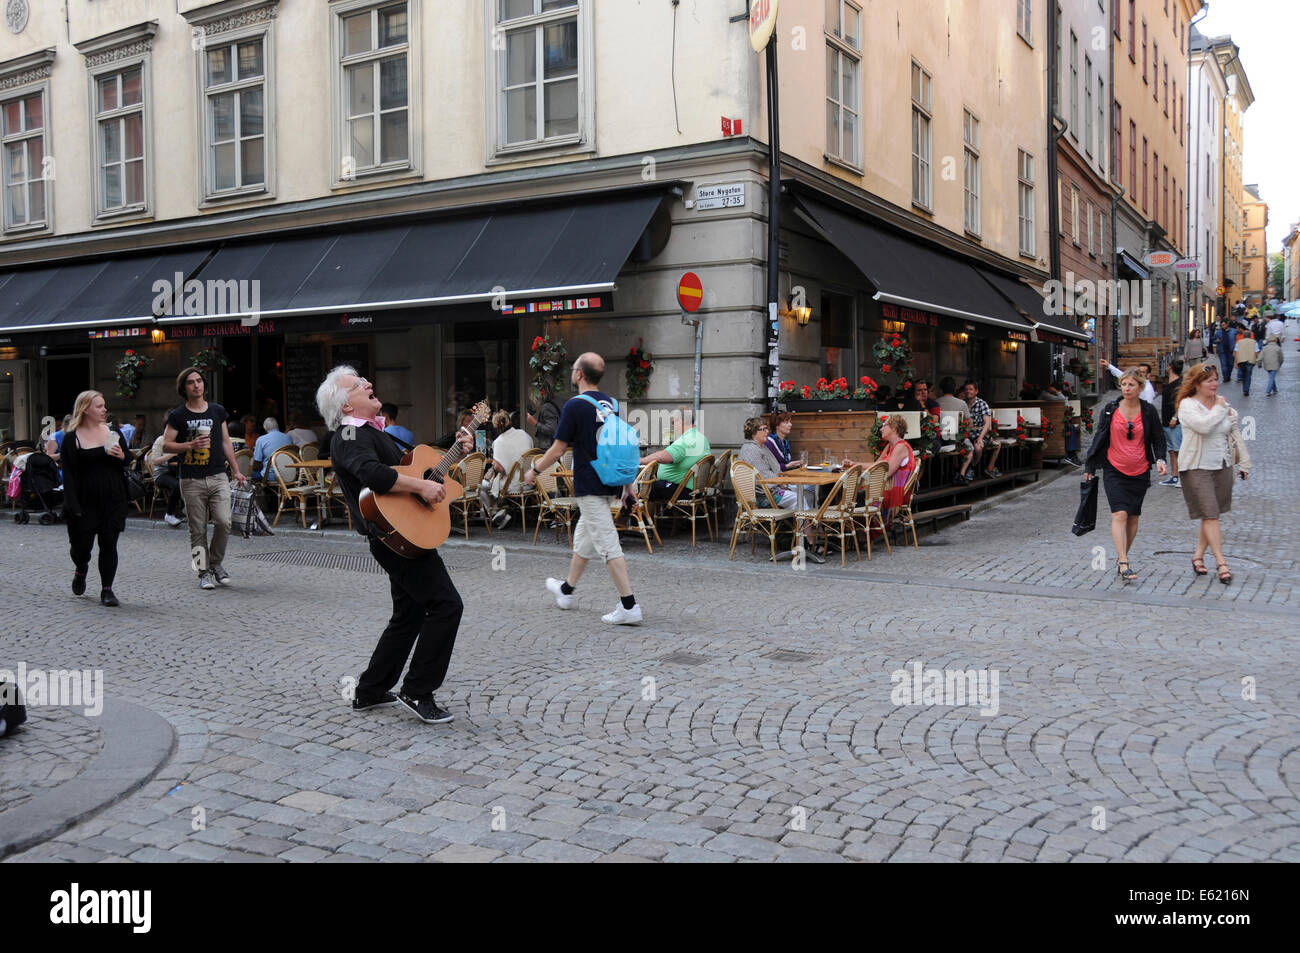 Street life in old Stockholm with sidewalk restaurants, coffee shops, pedestrians and musicians along cobblestone - Stock Image